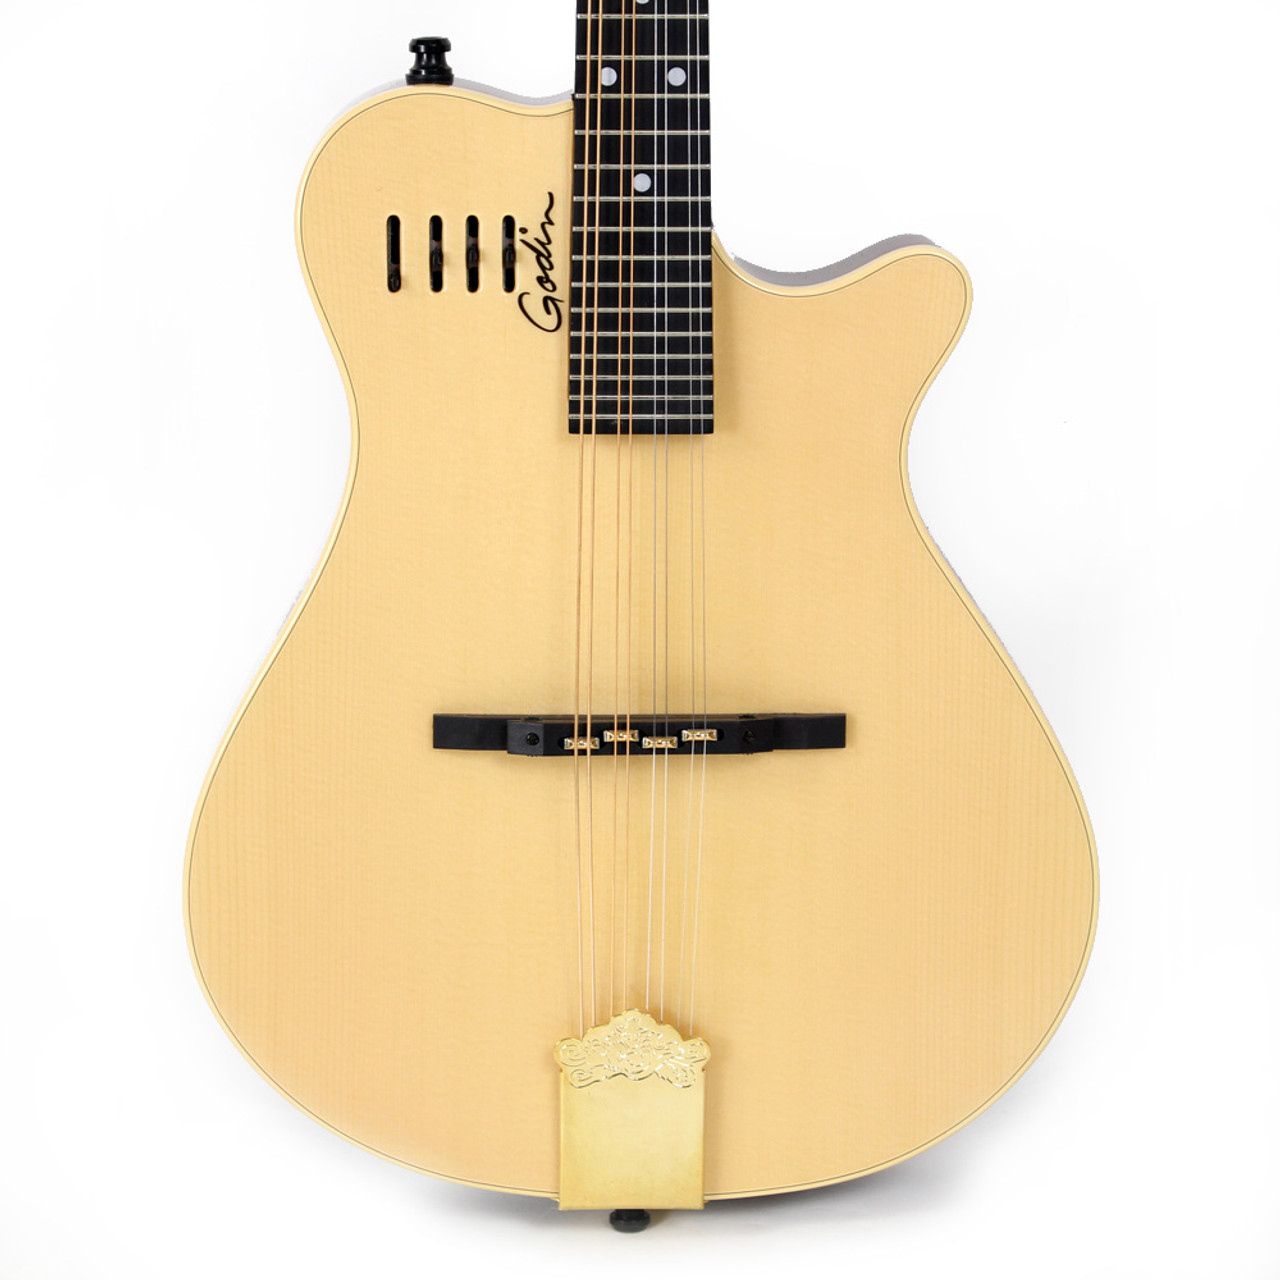 a0780472ccc New Godin A8 Acoustic Electric Mandolin B Stock in Natural   Cream City  Music